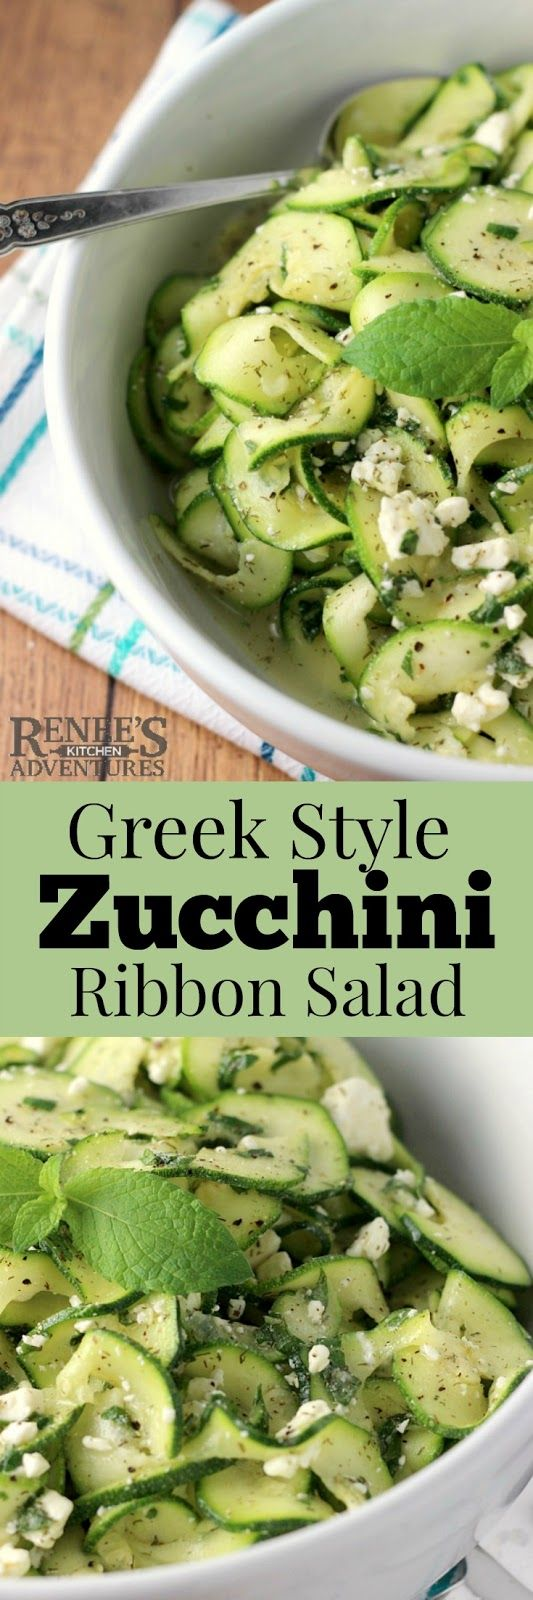 ... Zucchini Ribbon Salad on Pinterest | Zucchini Ribbons, Zucchini and